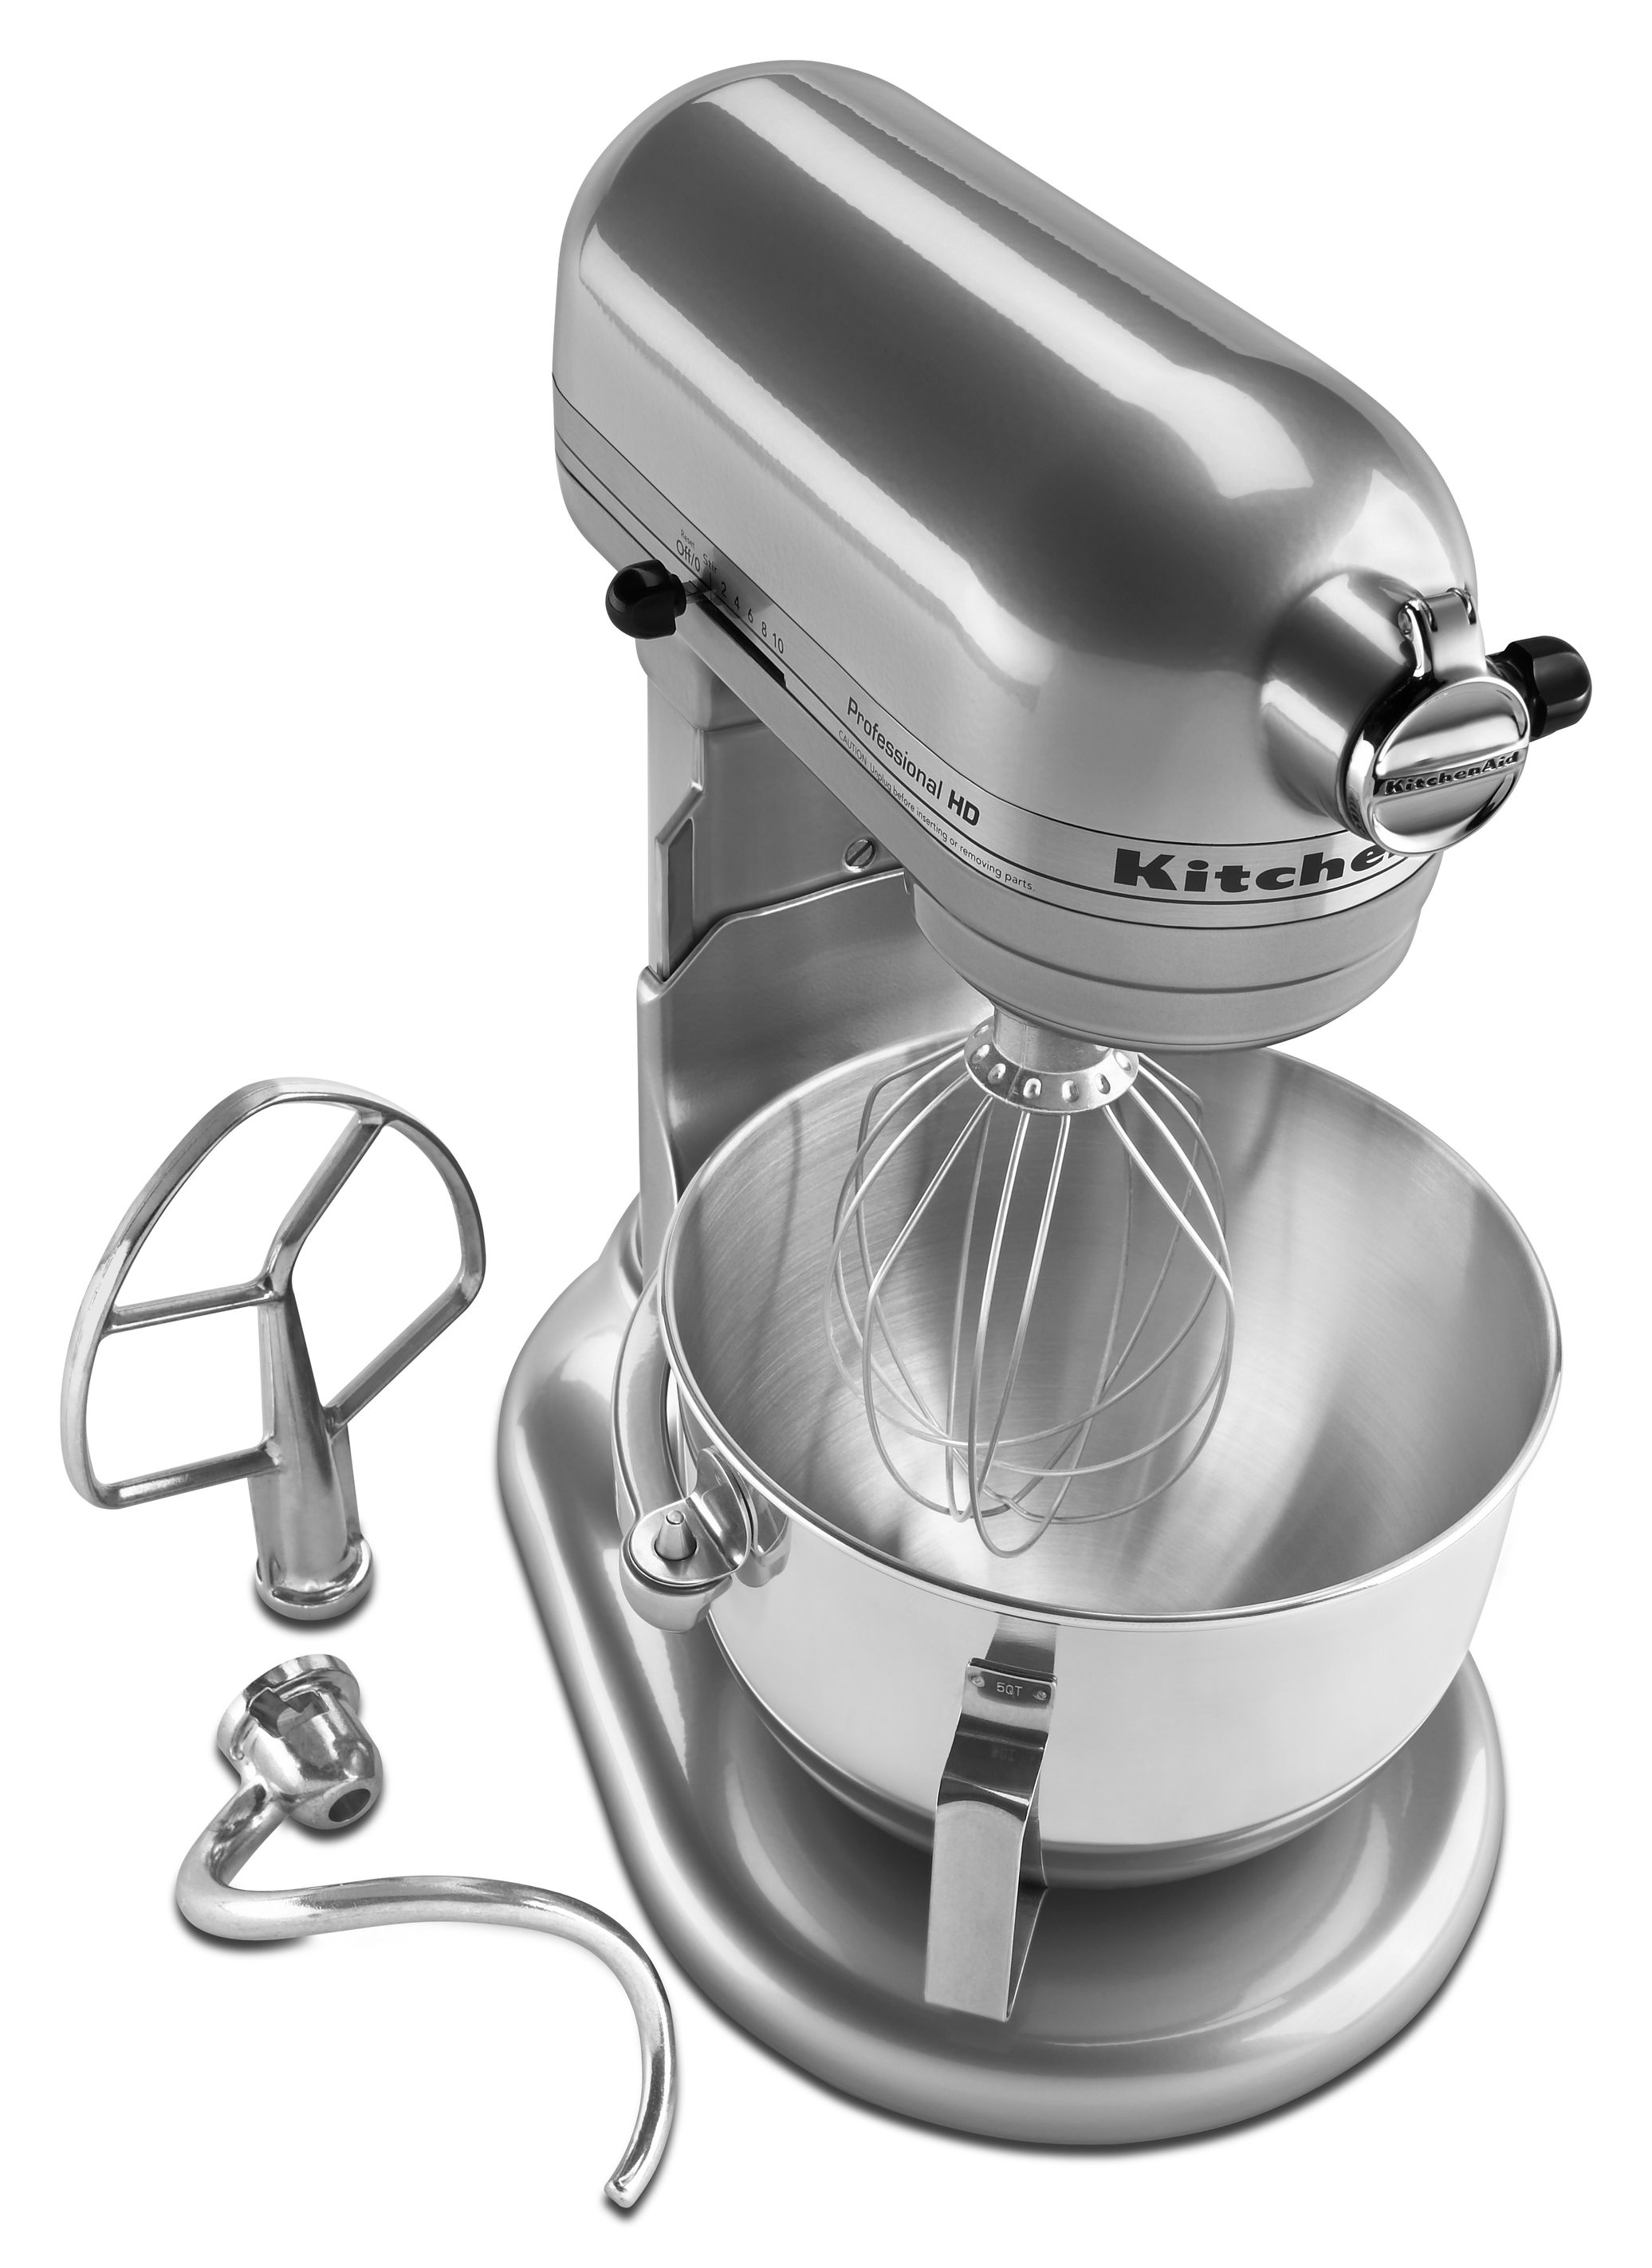 KitchenAid-Refurbished-Professional-HD-Series-Bowl-Lift-Stand-Mixer-RKG25H0X thumbnail 10